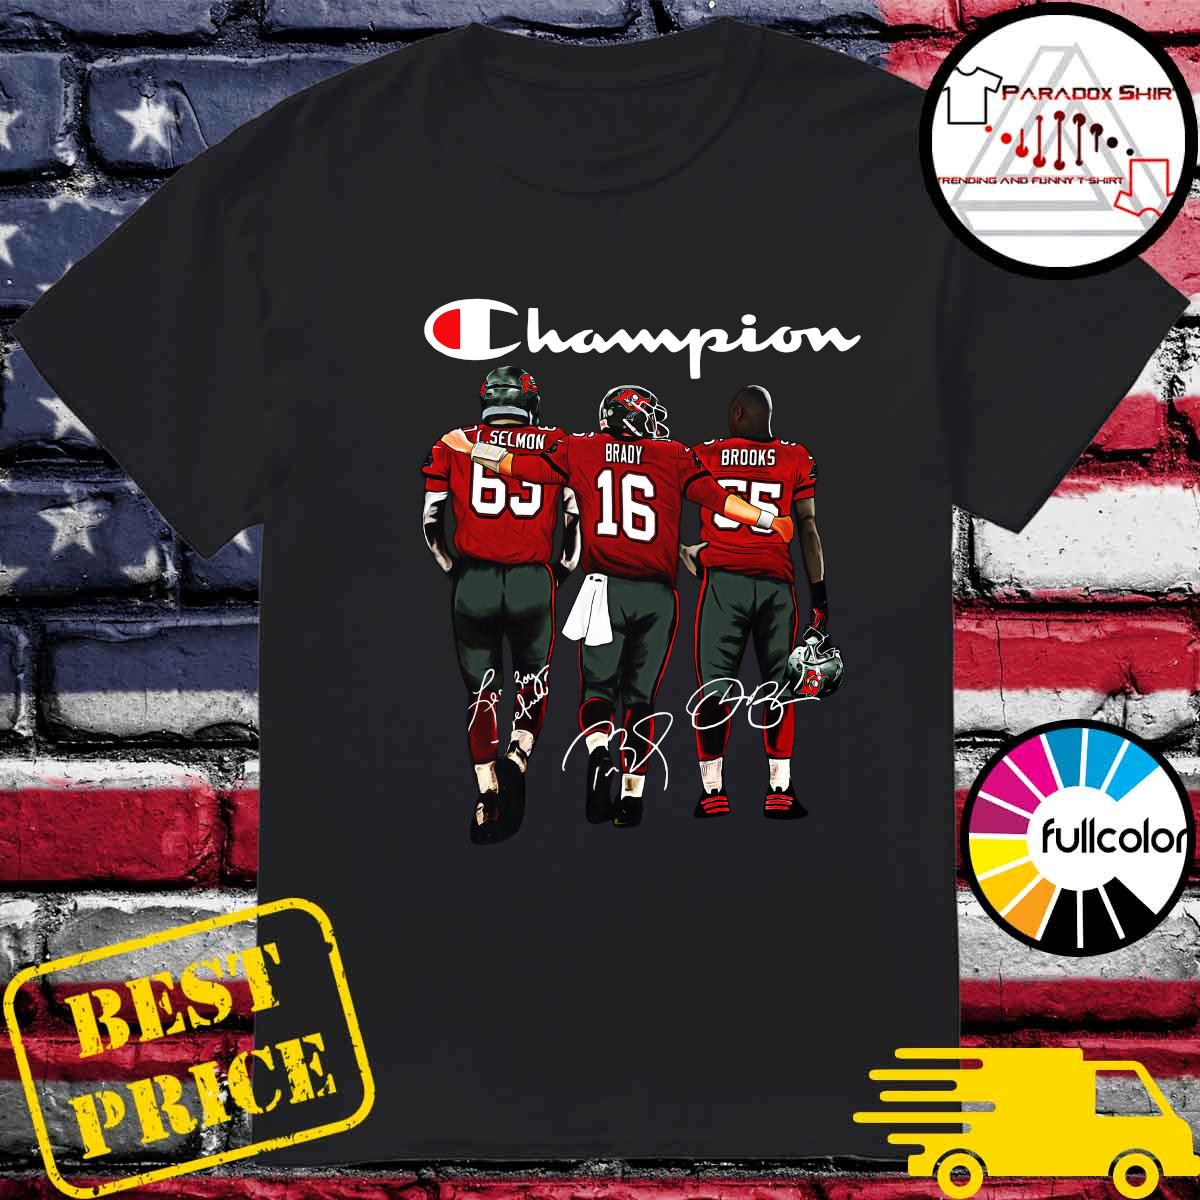 Champion Tampa Bay Buccaneers Lee Roy Selmon 63 Tom Brady 16 Derrick Brooks 55 Signatures Shirt